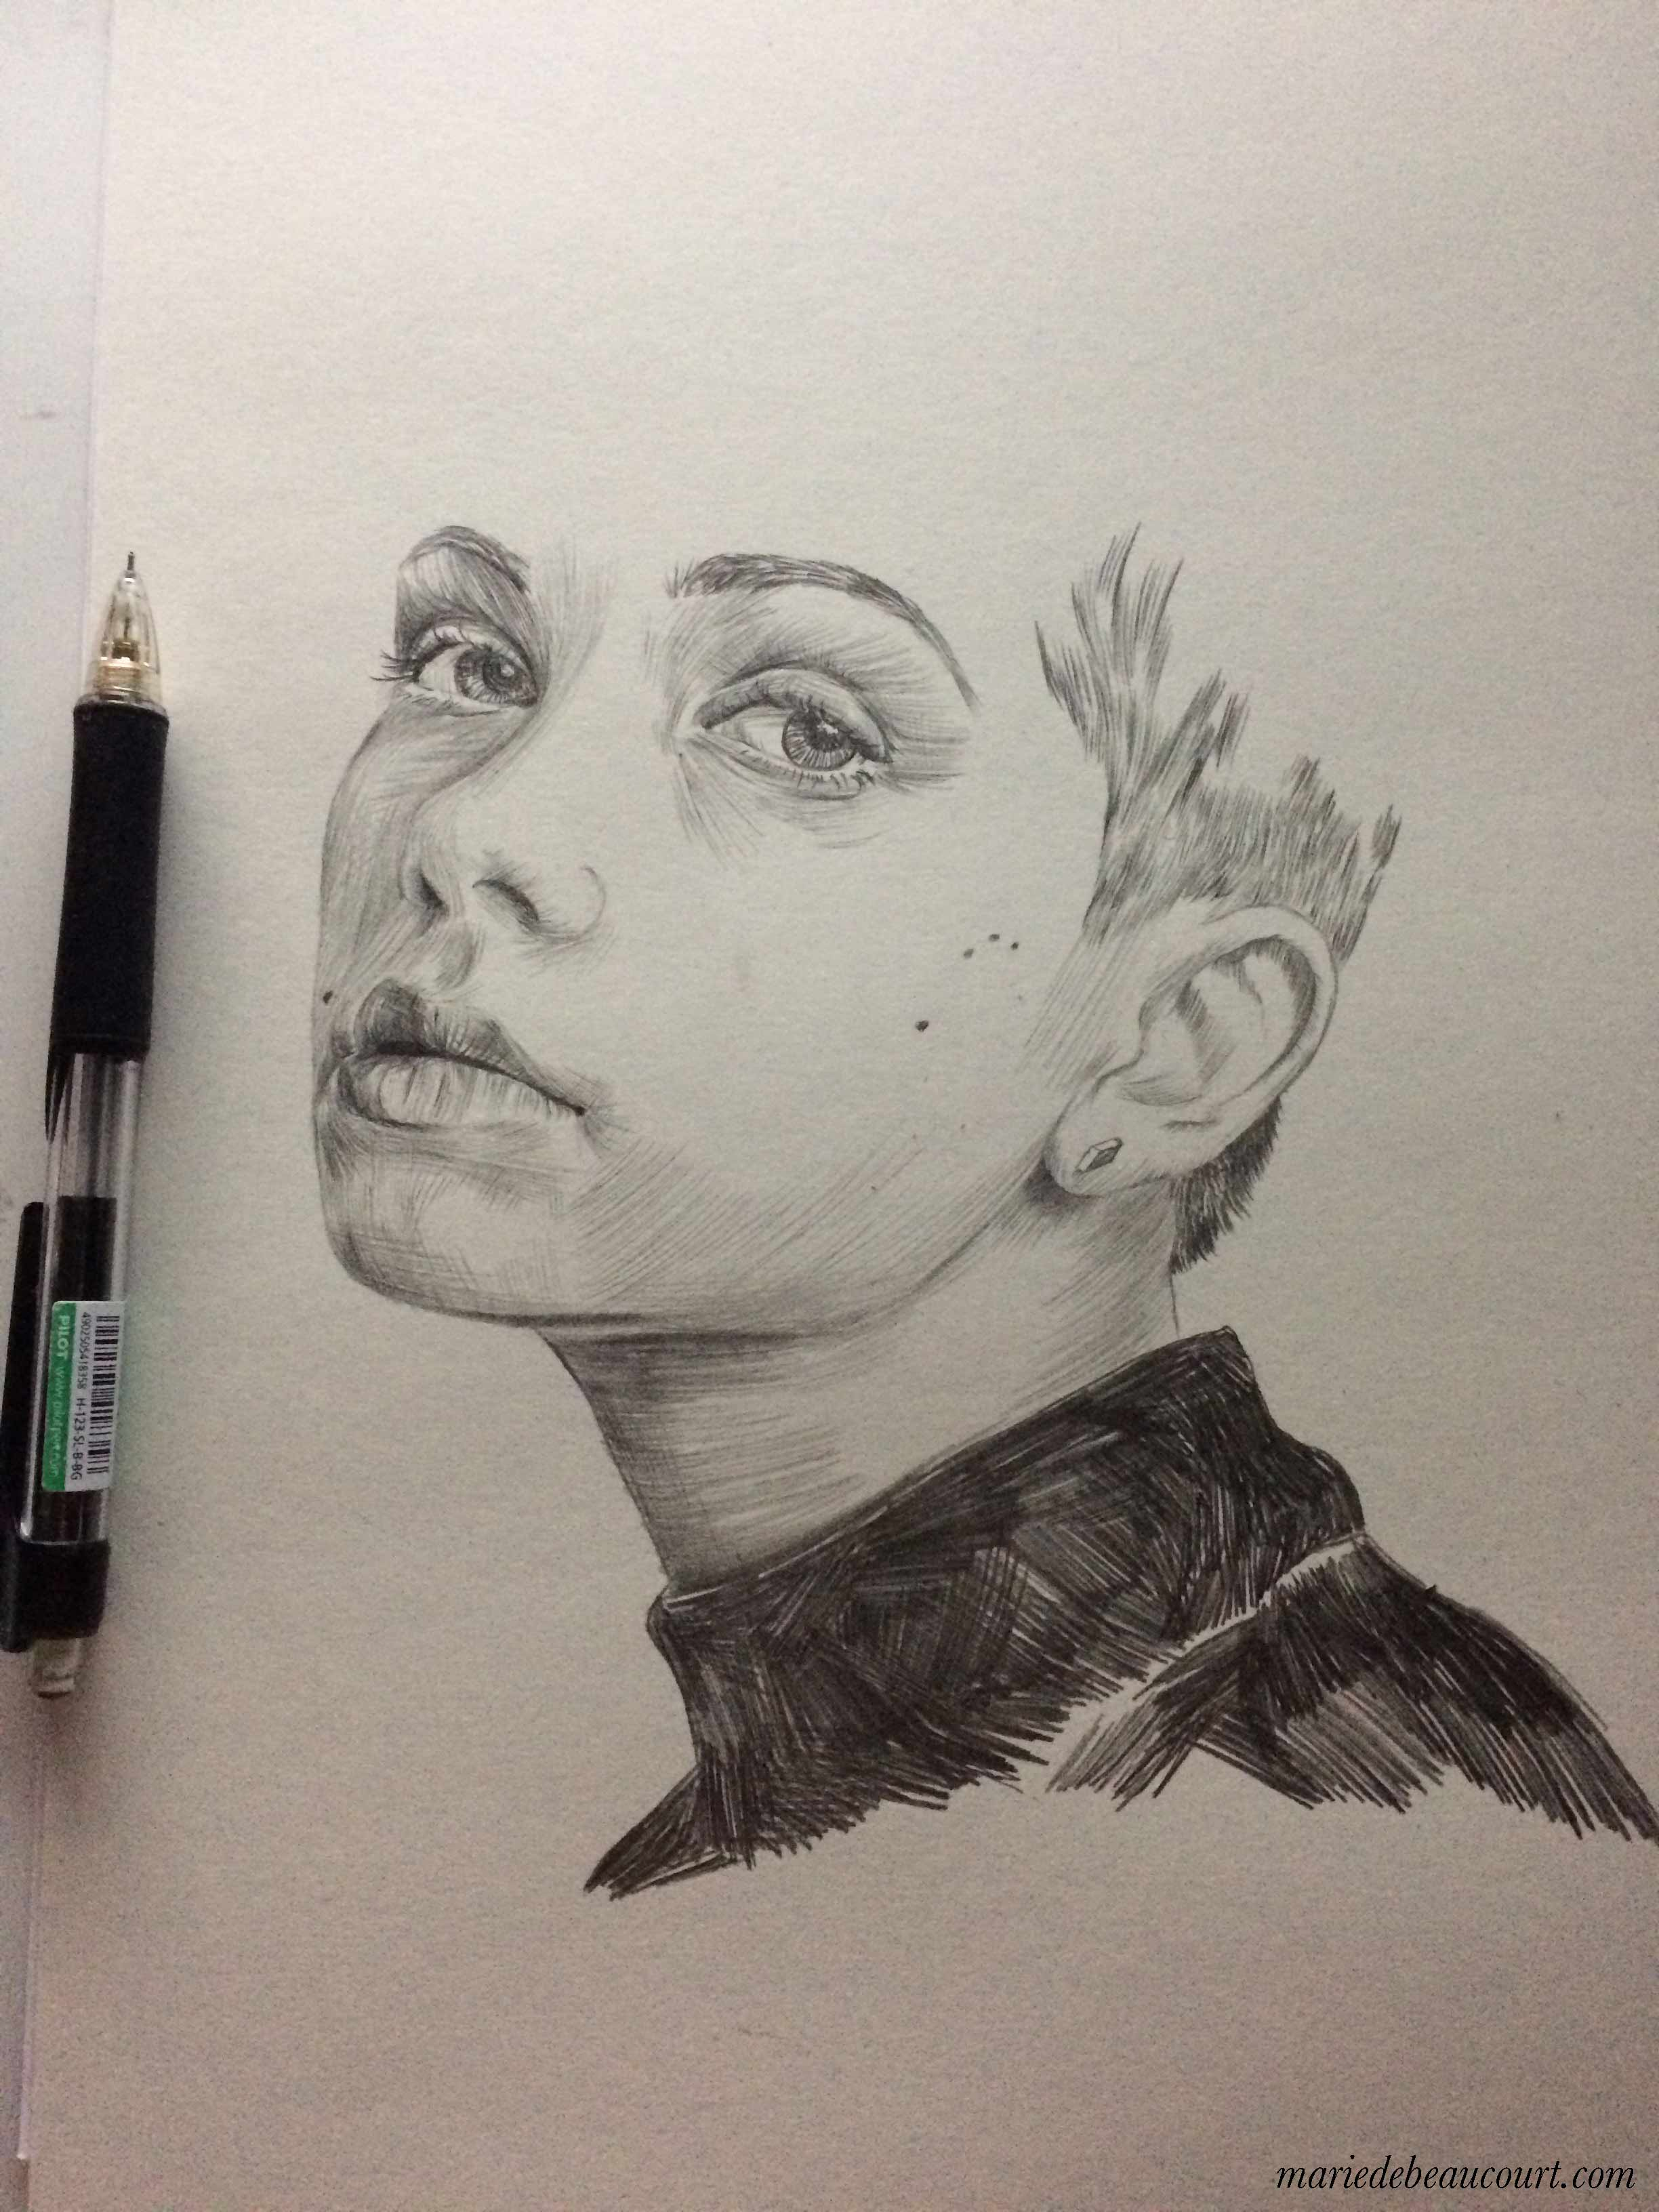 marie-de-beaucourt-illustration-portrait-work-in-progress-1.jpg